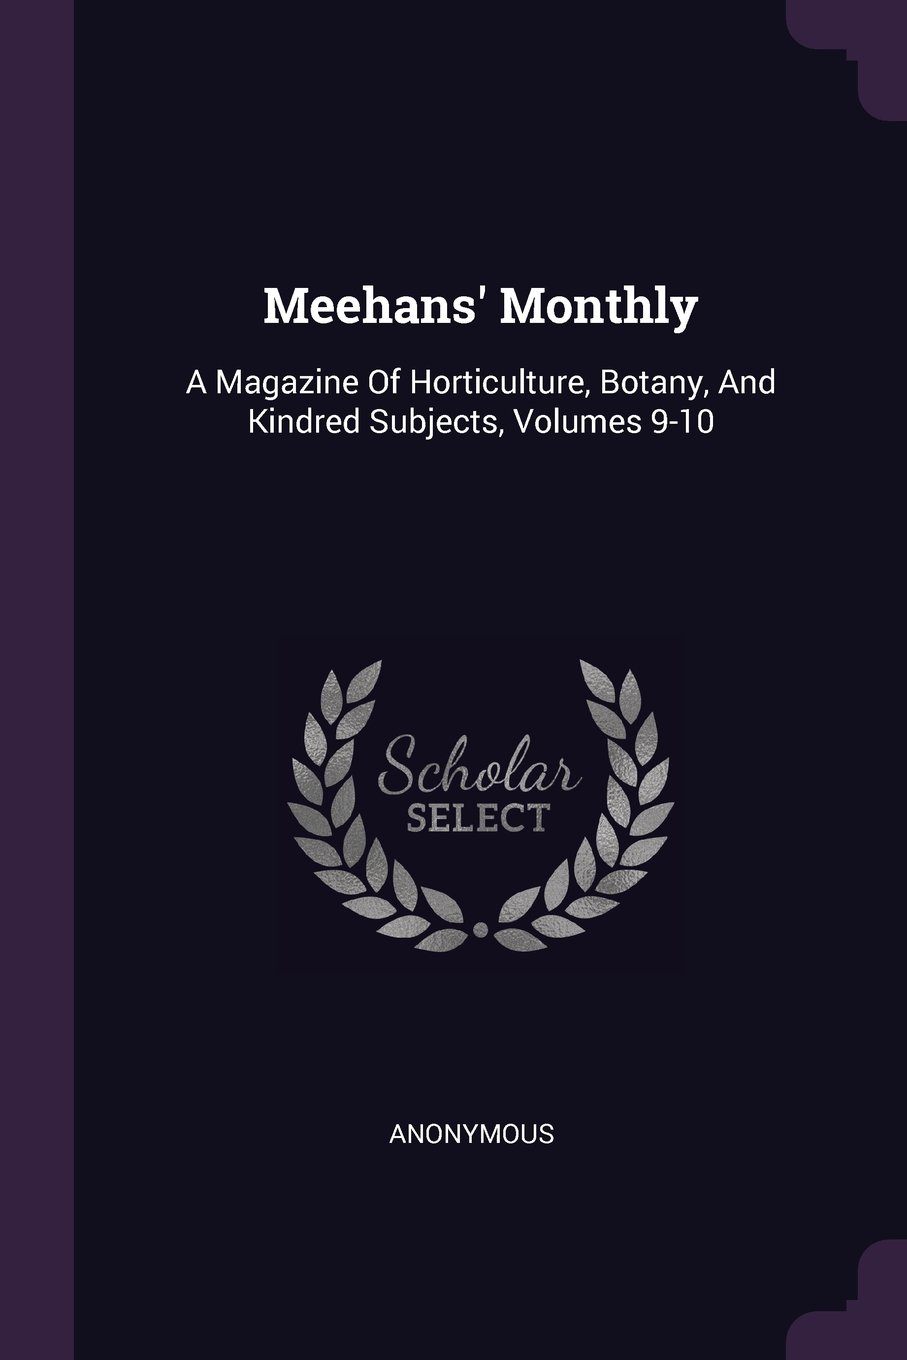 Download Meehans' Monthly: A Magazine Of Horticulture, Botany, And Kindred Subjects, Volumes 9-10 pdf